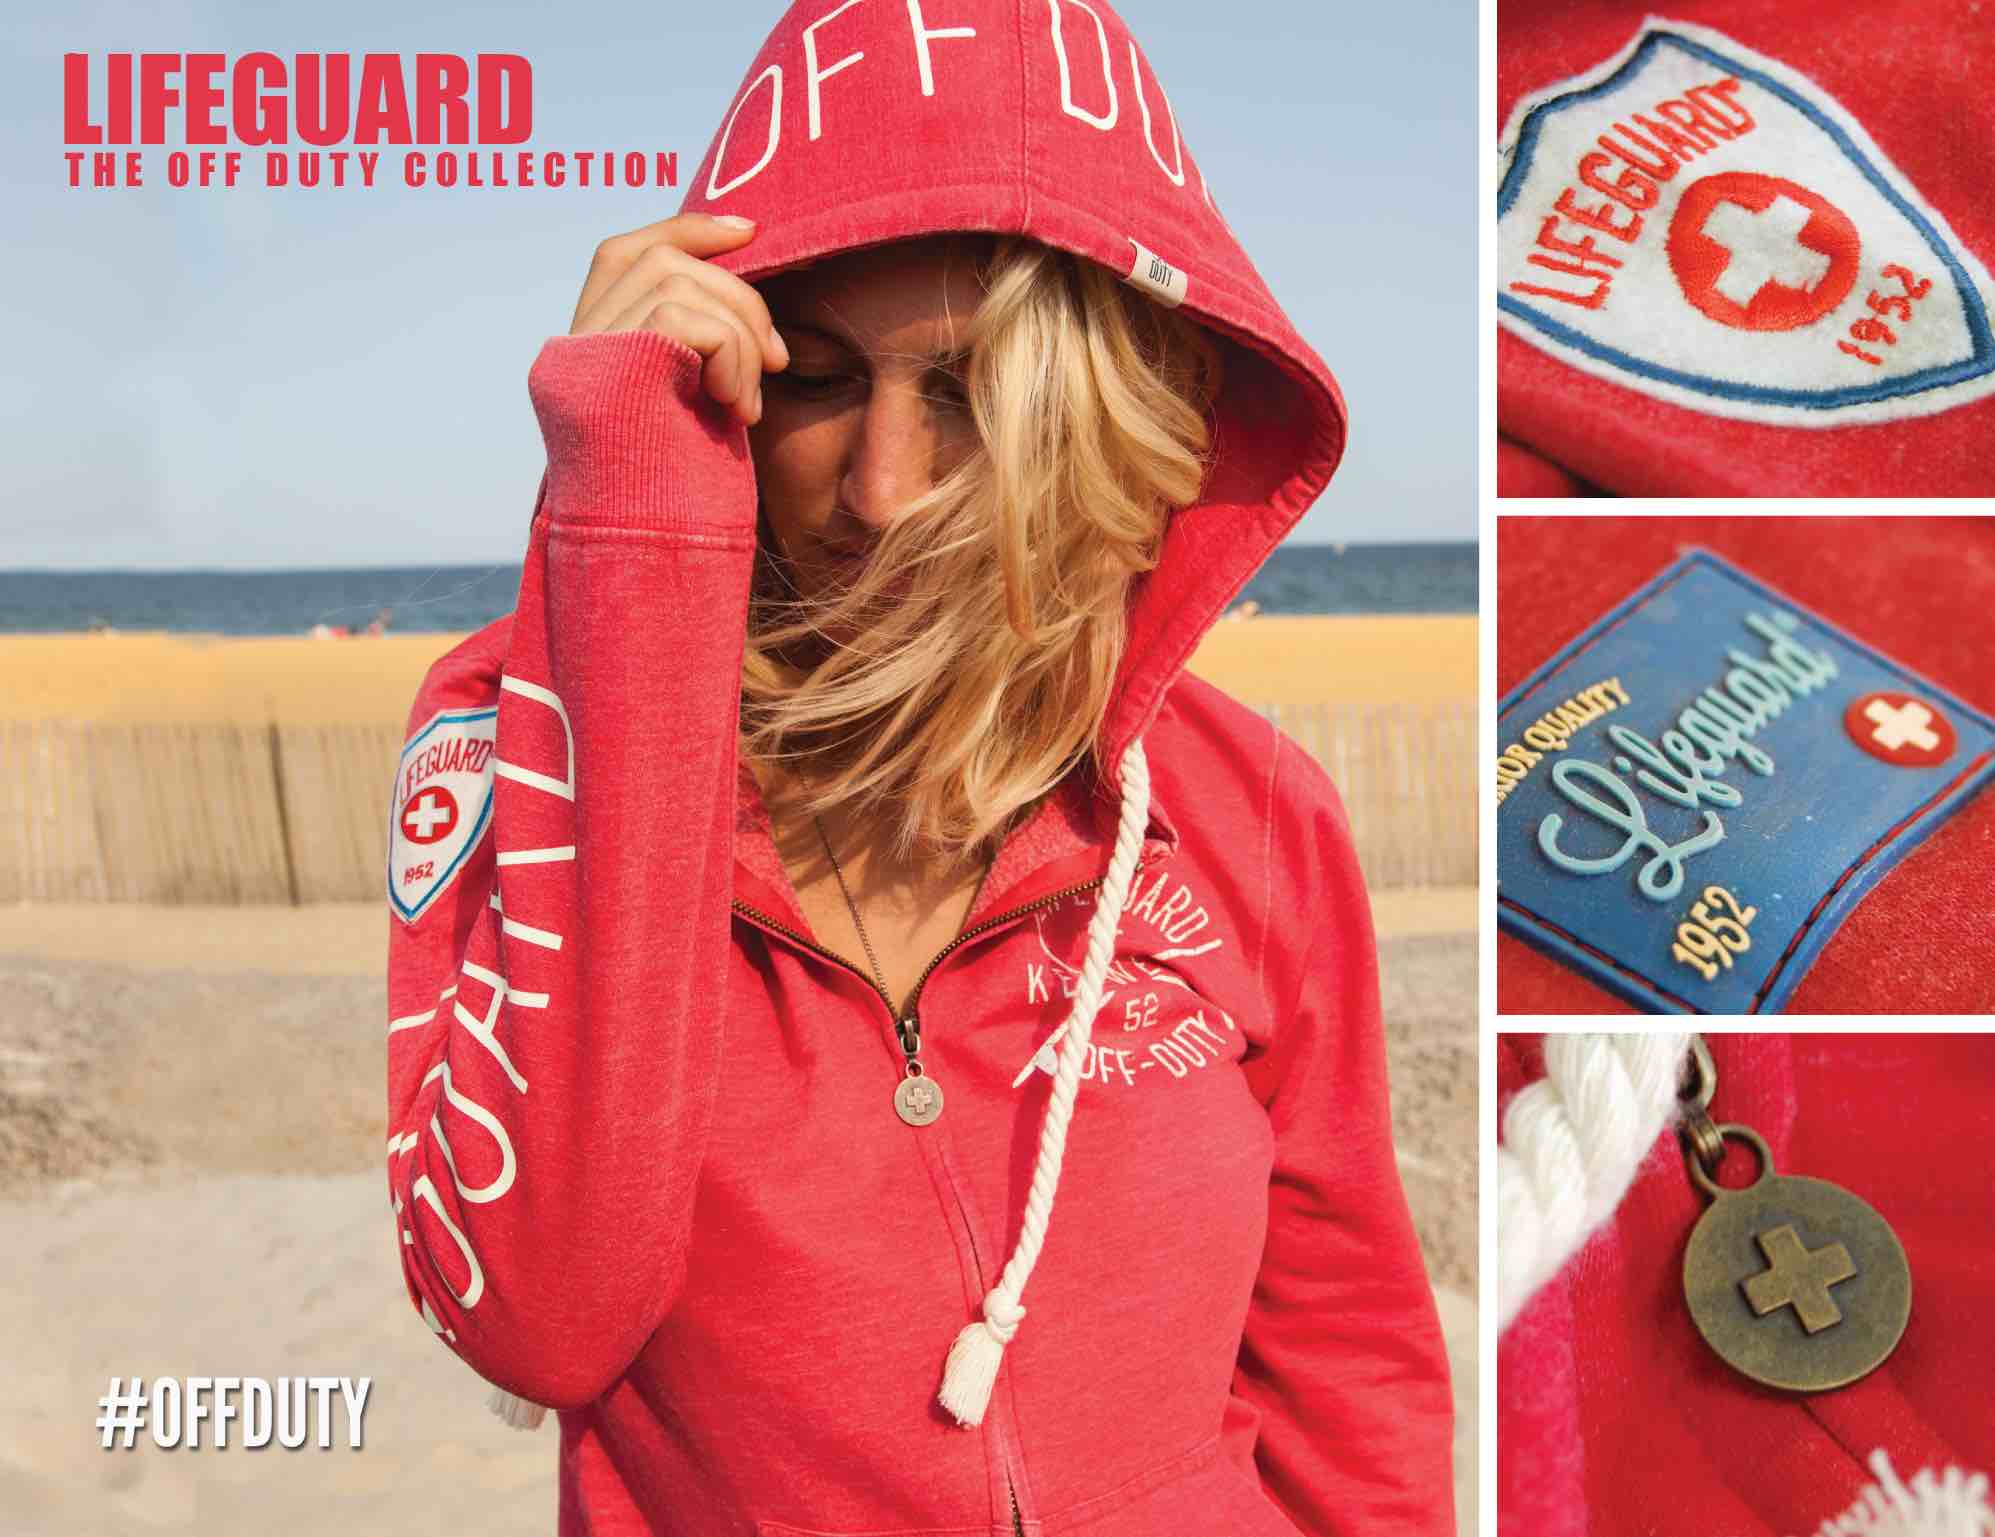 Off duty ladies Sweatpant, Sweatshirts, Beach Shorts | Lifeguard